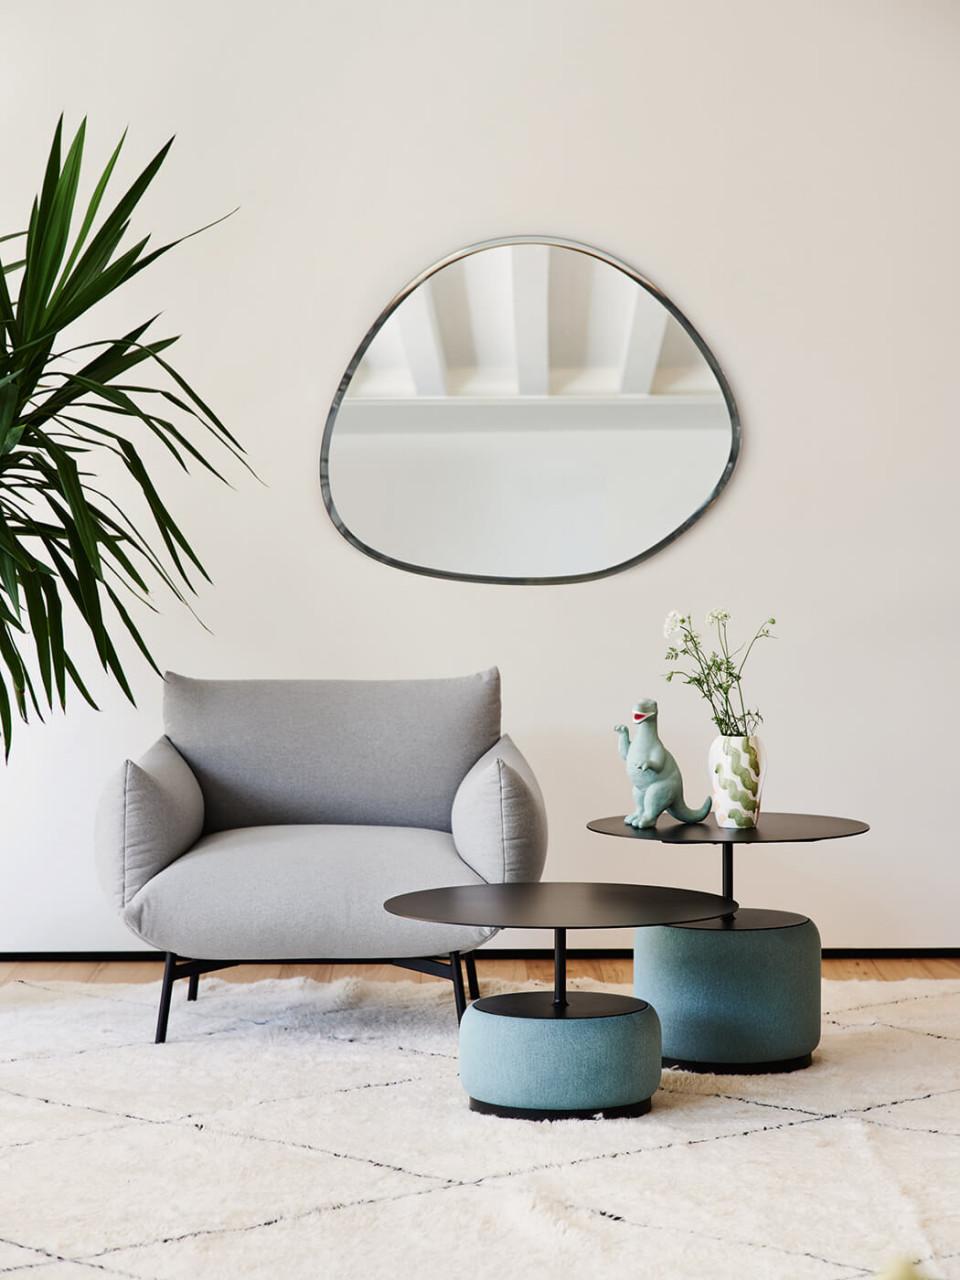 Bloom coffee table by Studio Pastina for Midj